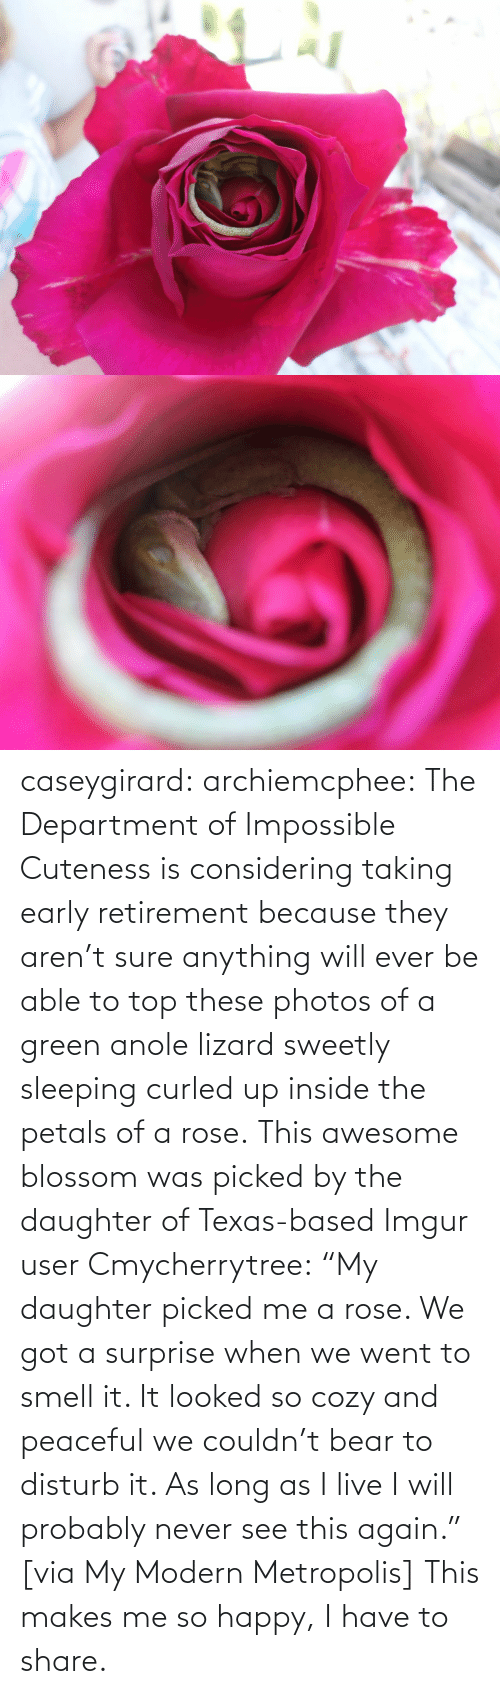 "sure: caseygirard:  archiemcphee:   The Department of Impossible Cuteness is considering taking early retirement because they aren't sure anything will ever be able to top these photos of a green anole lizard sweetly sleeping curled up inside the petals of a rose. This awesome blossom was picked by the daughter of Texas-based Imgur user Cmycherrytree: ""My daughter picked me a rose. We got a surprise when we went to smell it. It looked so cozy and peaceful we couldn't bear to disturb it. As long as I live I will probably never see this again."" [via My Modern Metropolis]   This makes me so happy, I have to share."